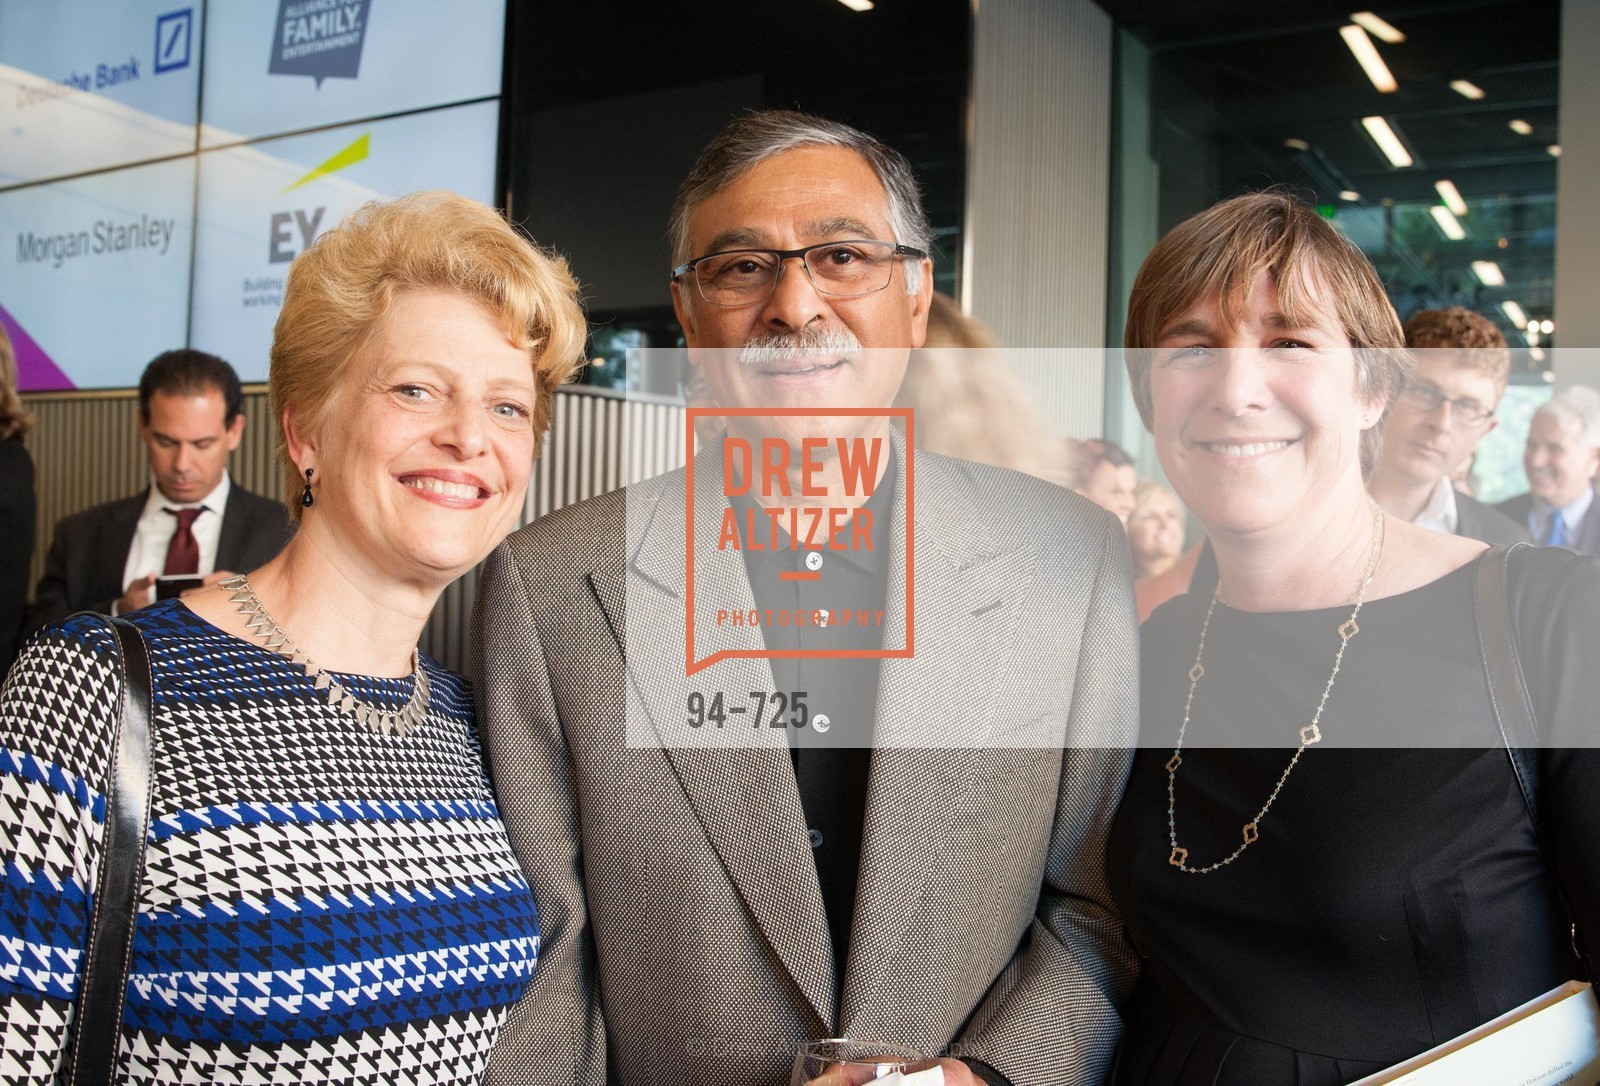 Carey Perloff, Yogen Dalal, COMMON SENSE Media Awards 2015, US, May 14th, 2015,Drew Altizer, Drew Altizer Photography, full-service agency, private events, San Francisco photographer, photographer california